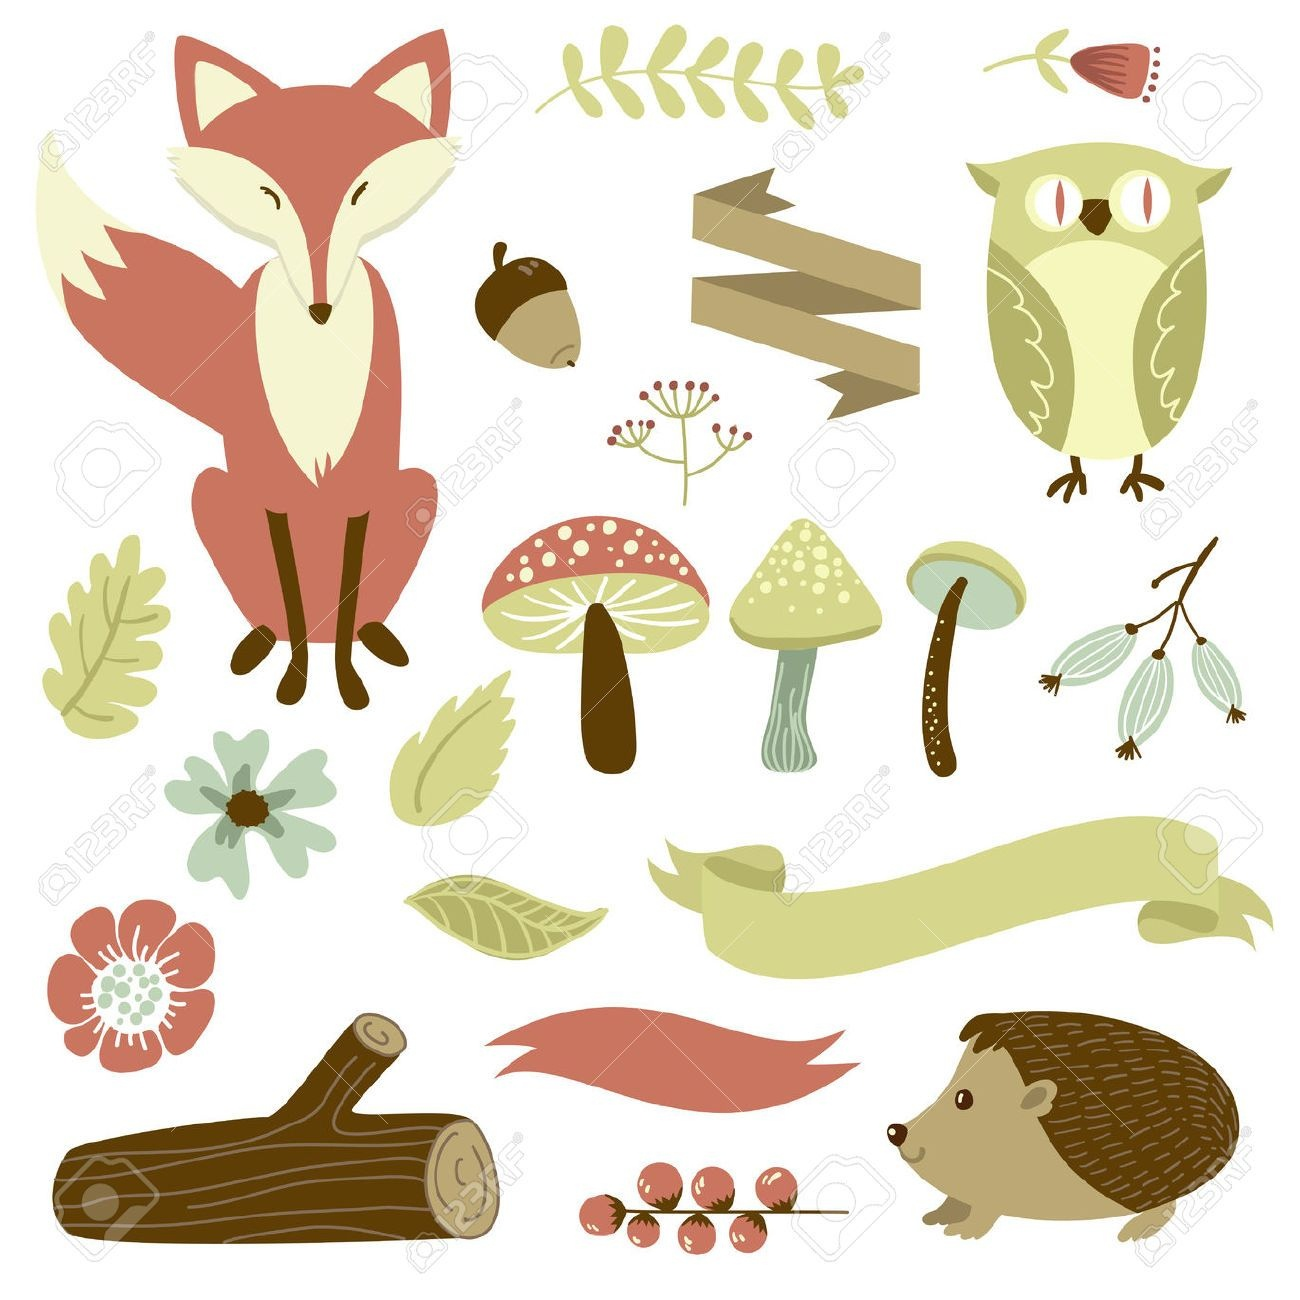 Free Printable Forest Animal Silhouettes - Google Search | Classroom - Free Printable Woodland Animal Templates